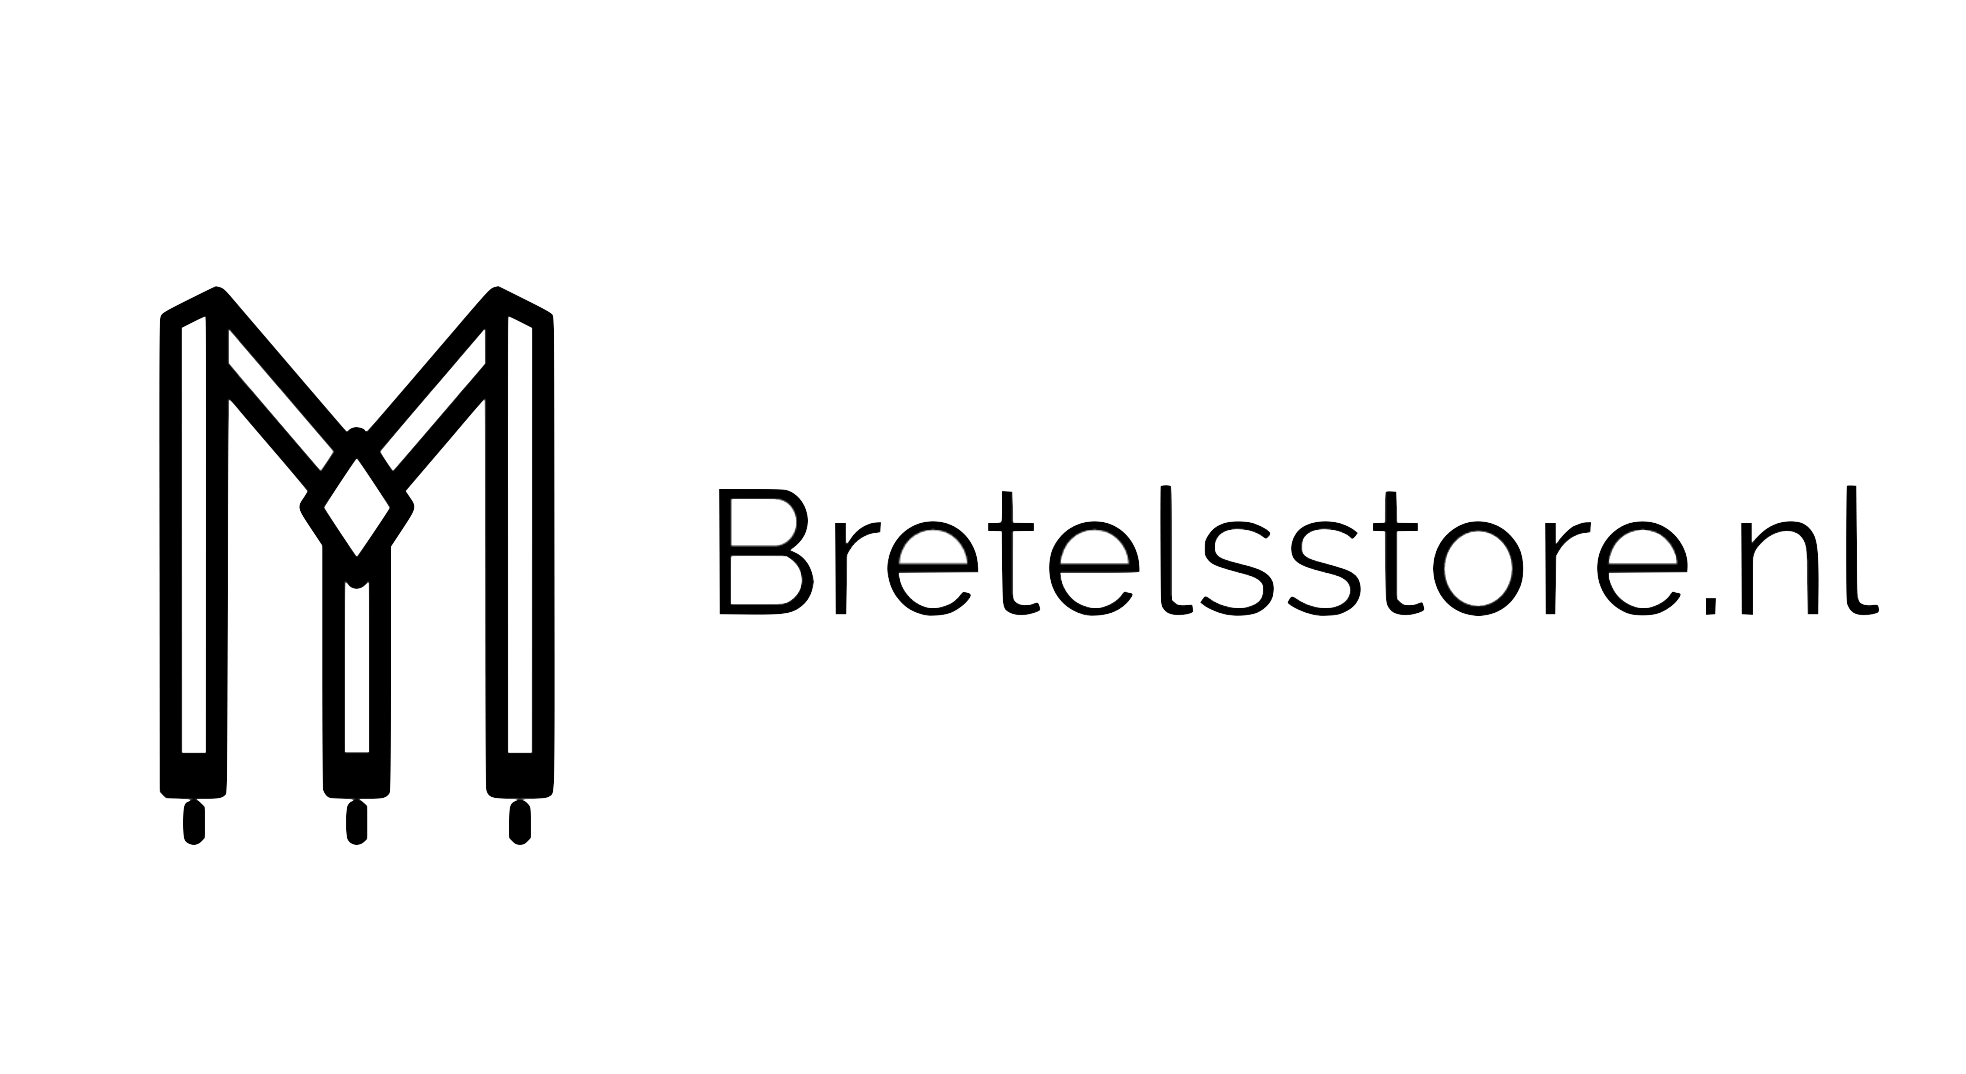 Bretelsstore.nl